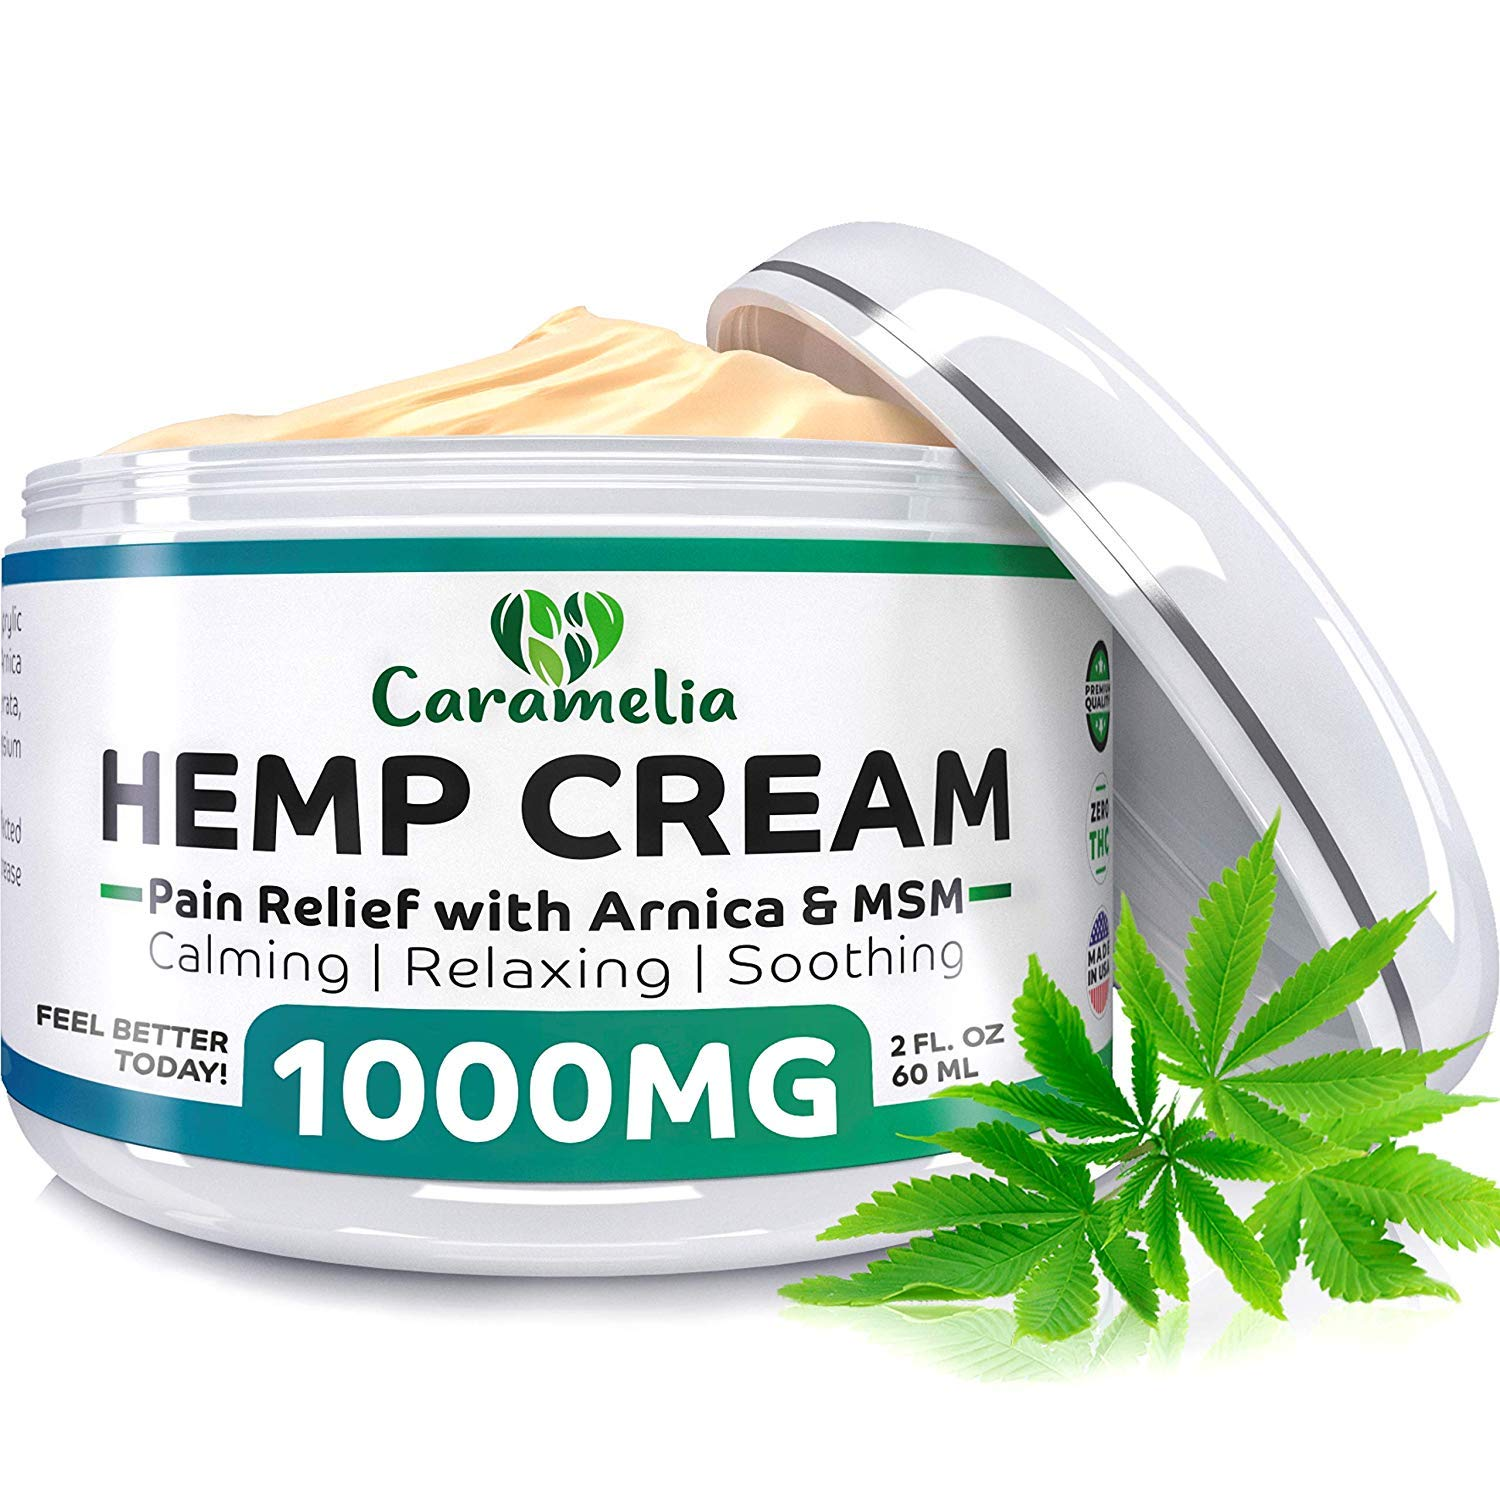 Hemp Extract Cream - 1000Mg - Made in USA - Natural Hemp Pain Relief Cream for Inflammation, Muscle, Joint, Back, Knee & Arthritis Pain - Hemp Salve Contains Arnica, MSM & 10% EMU Oil - Non-GMO